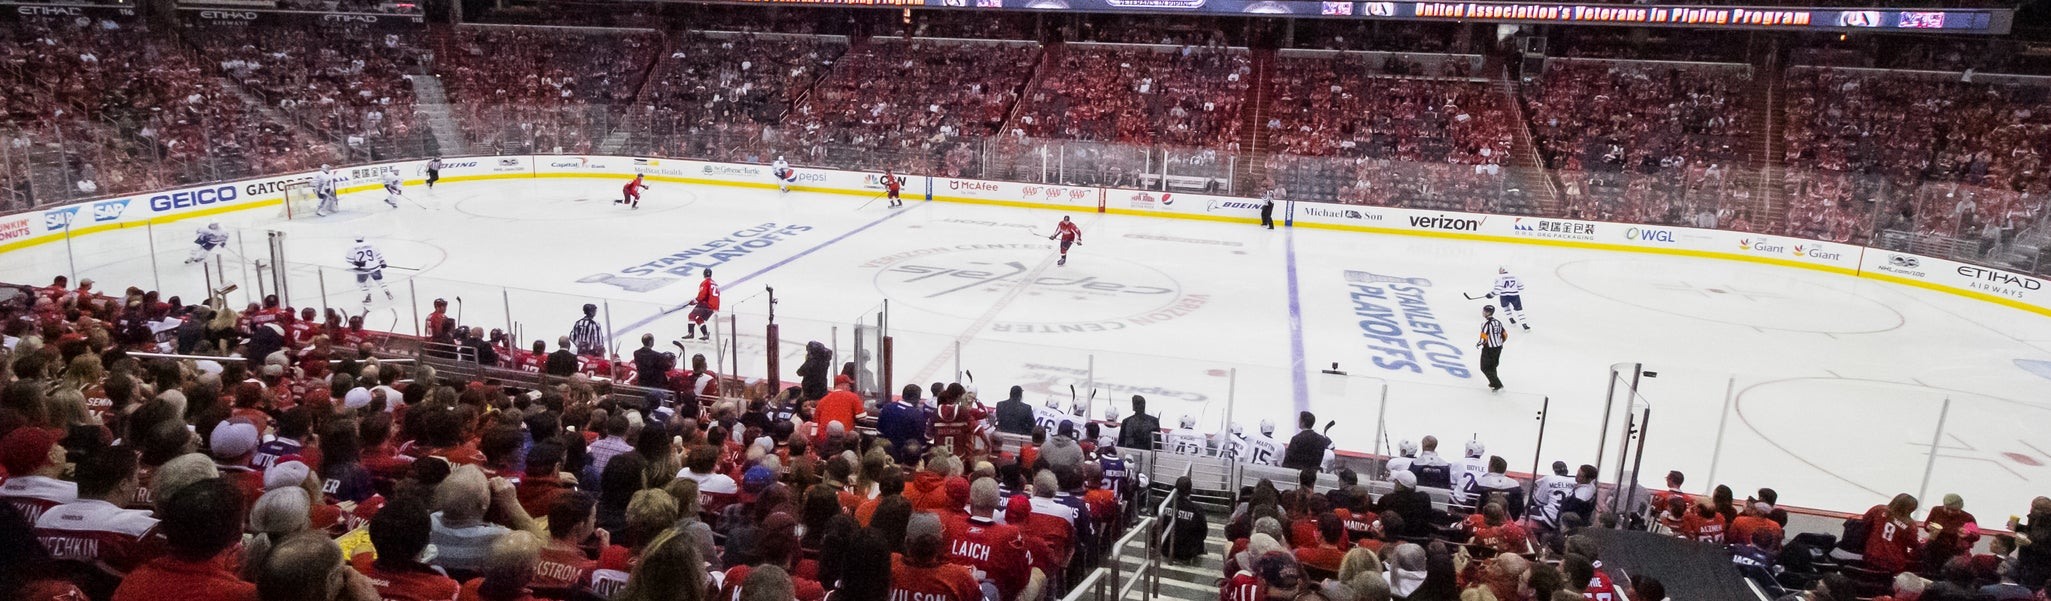 Seat view from LL Center Preferred 101 at Capital One Arena